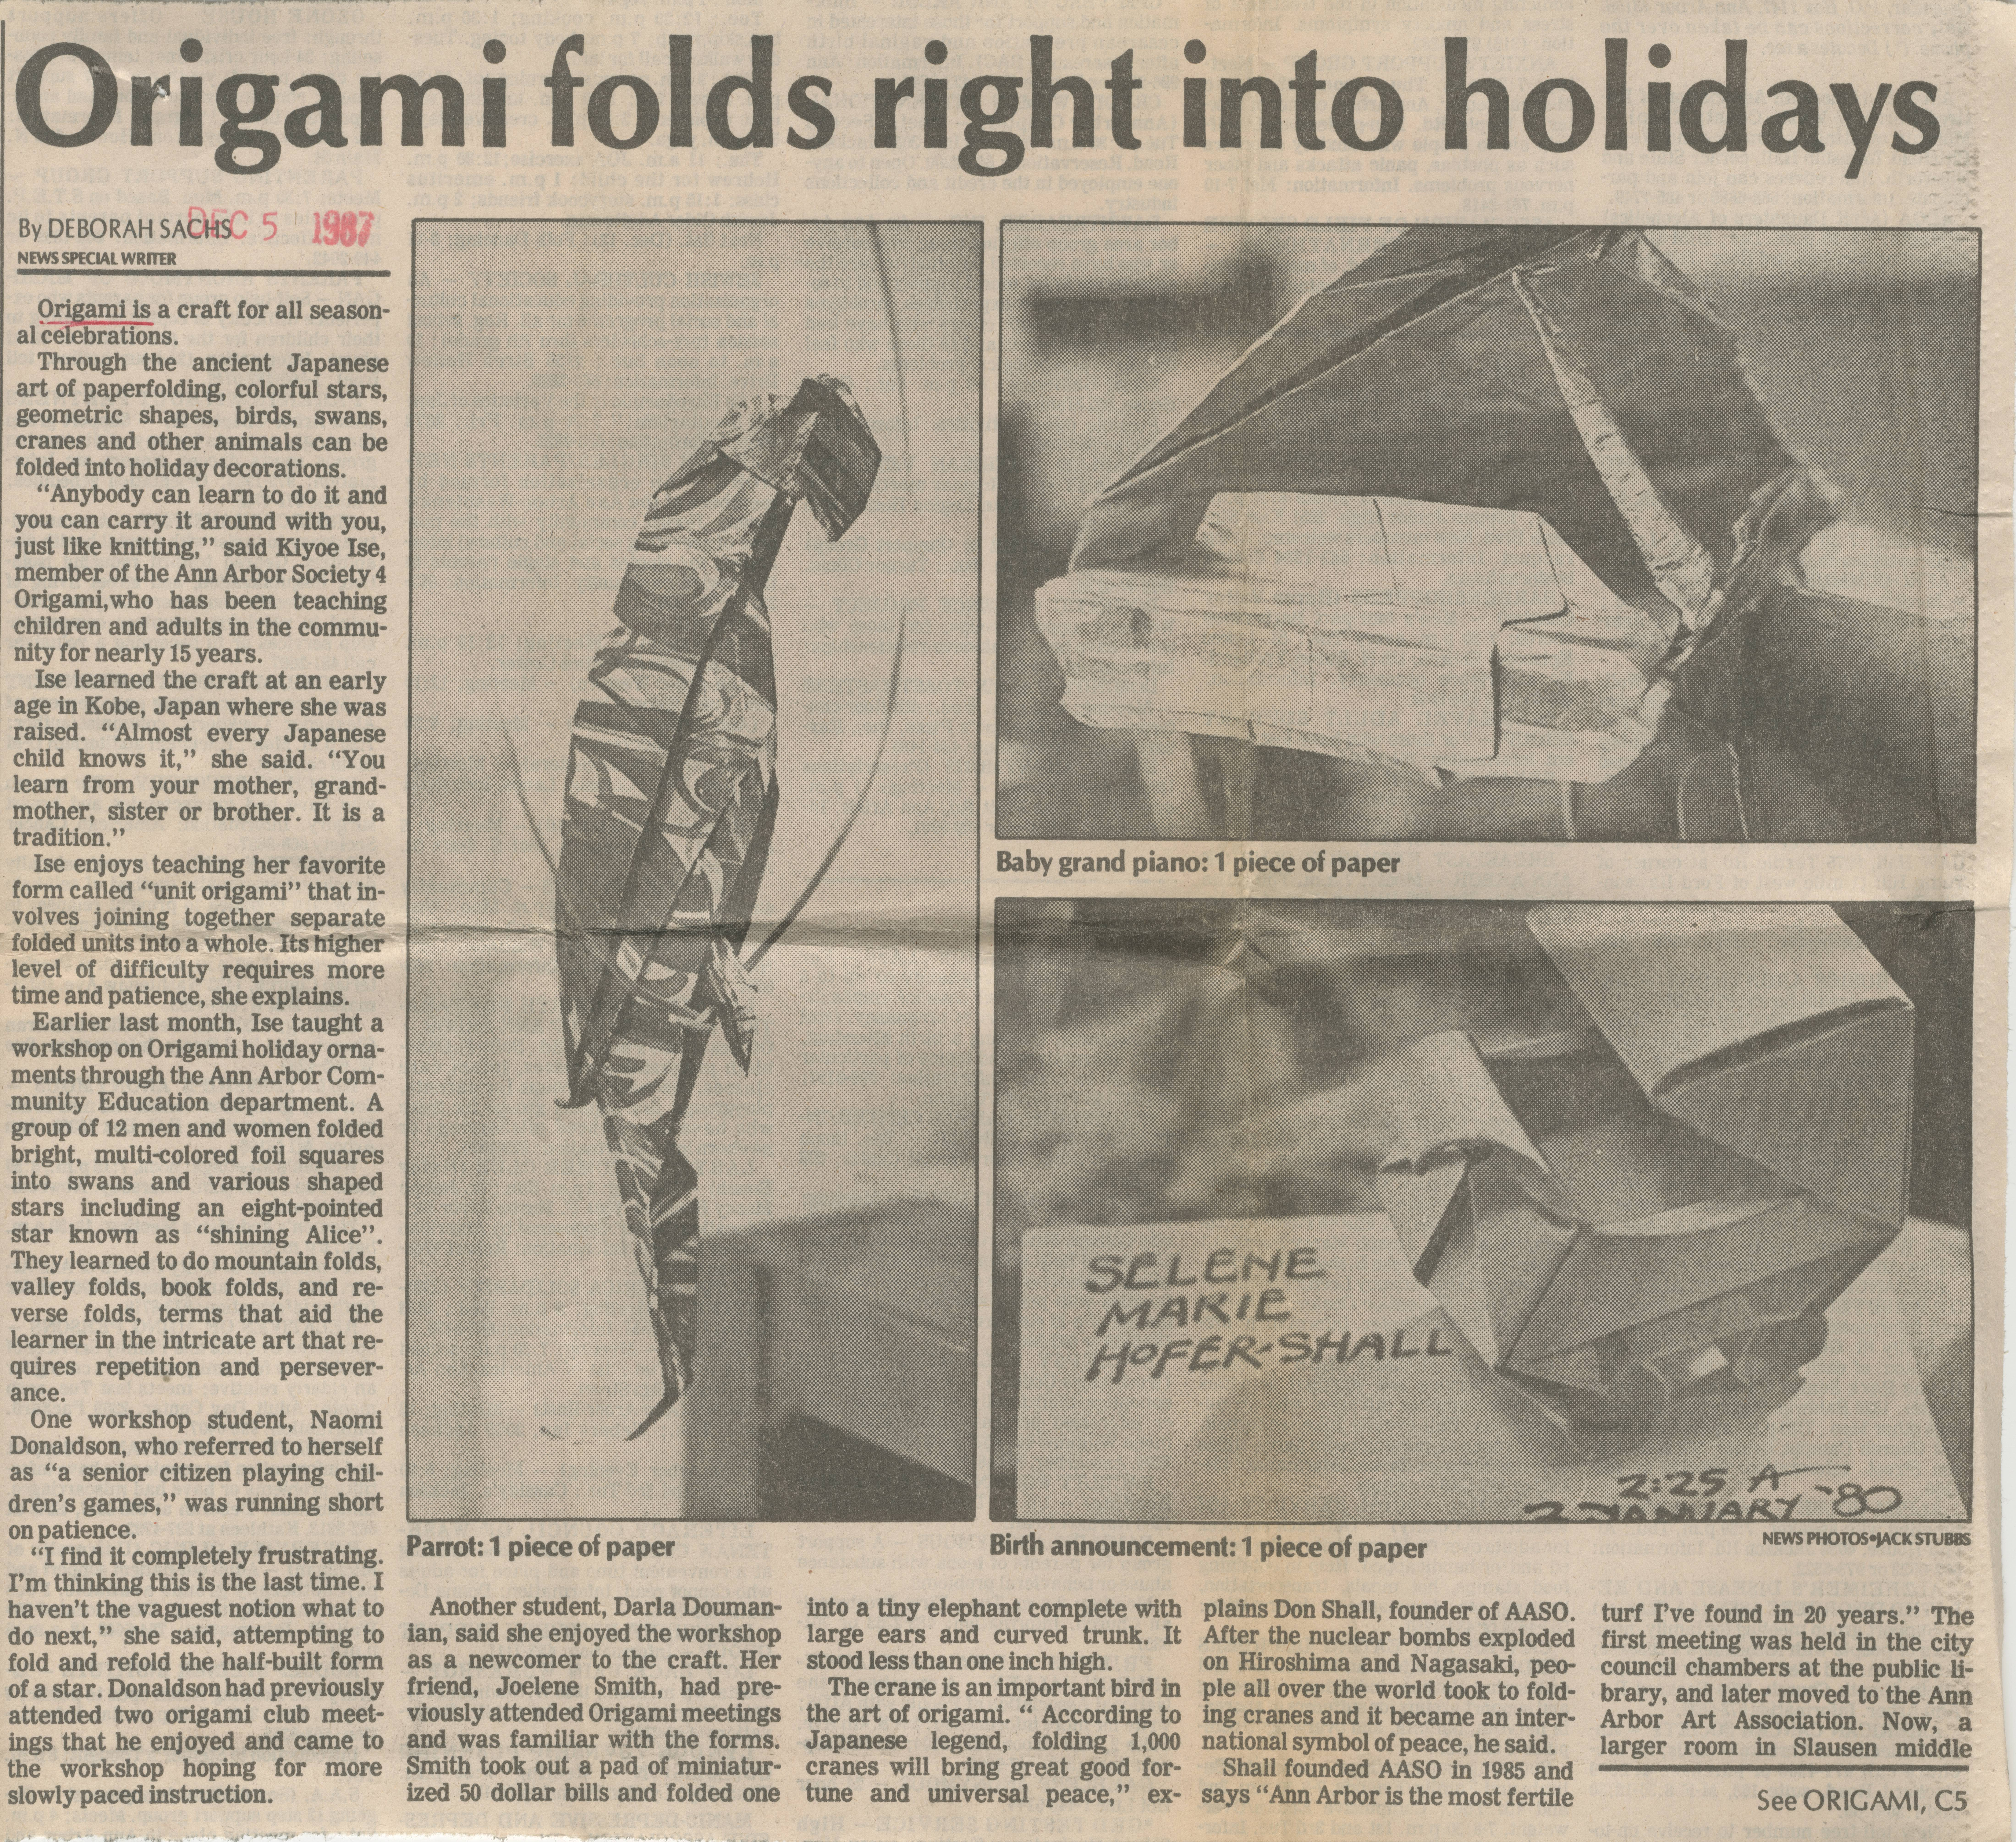 Origami Folds Right Into Holidays  image